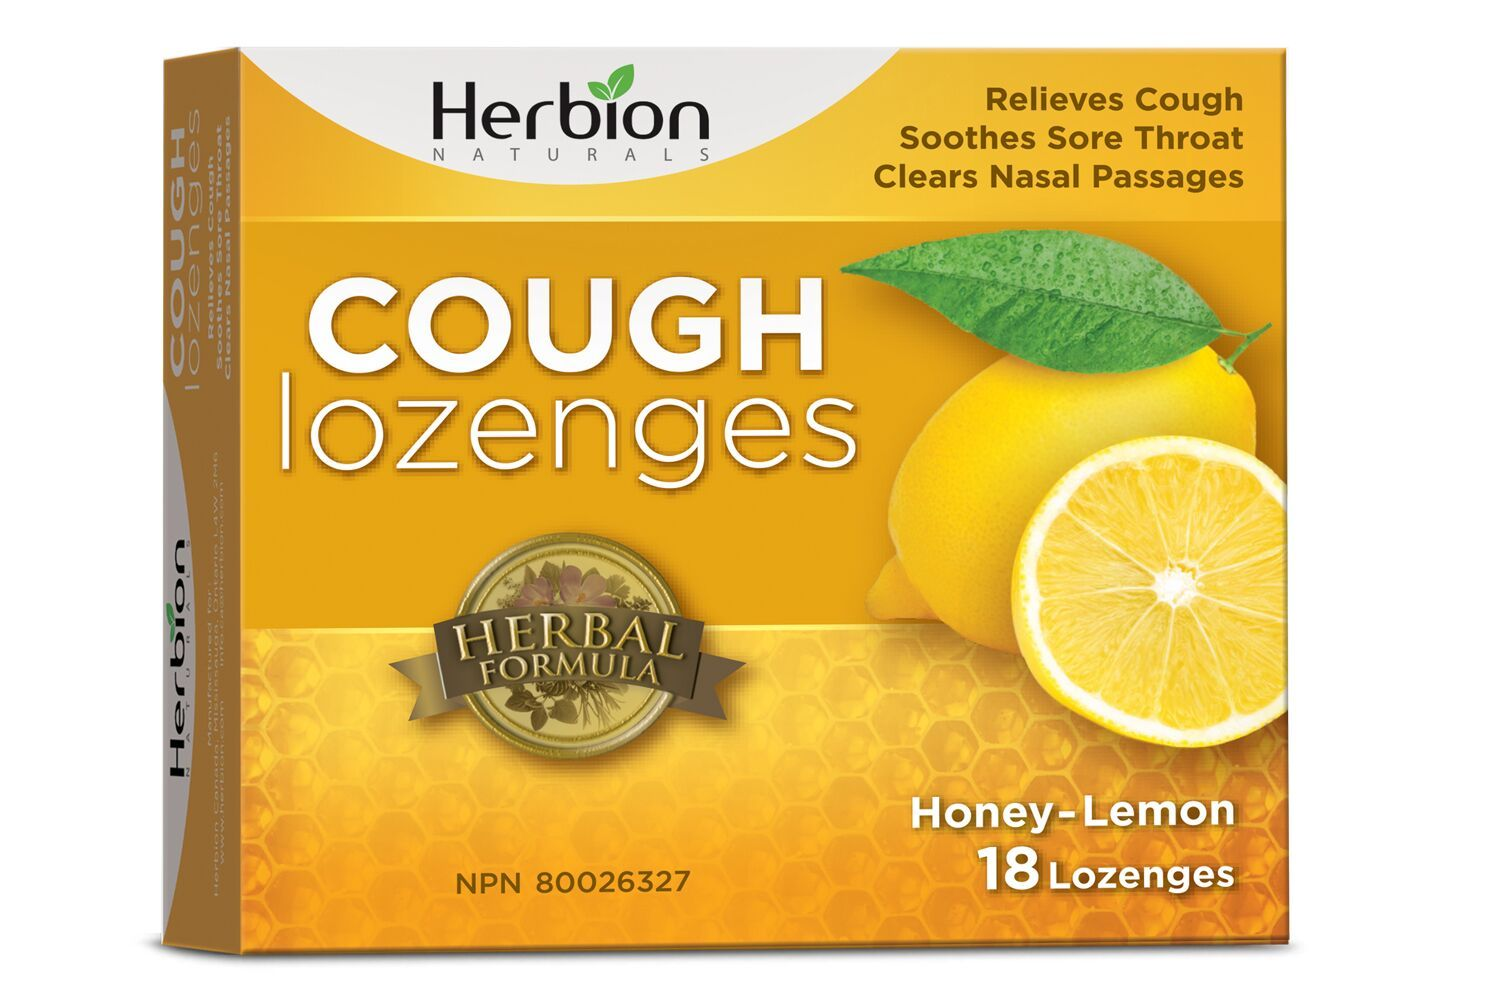 Featured,Supplements & Vitamins - Herbion - Cough Lozenges - Honey Lemon, 18 Lozenges